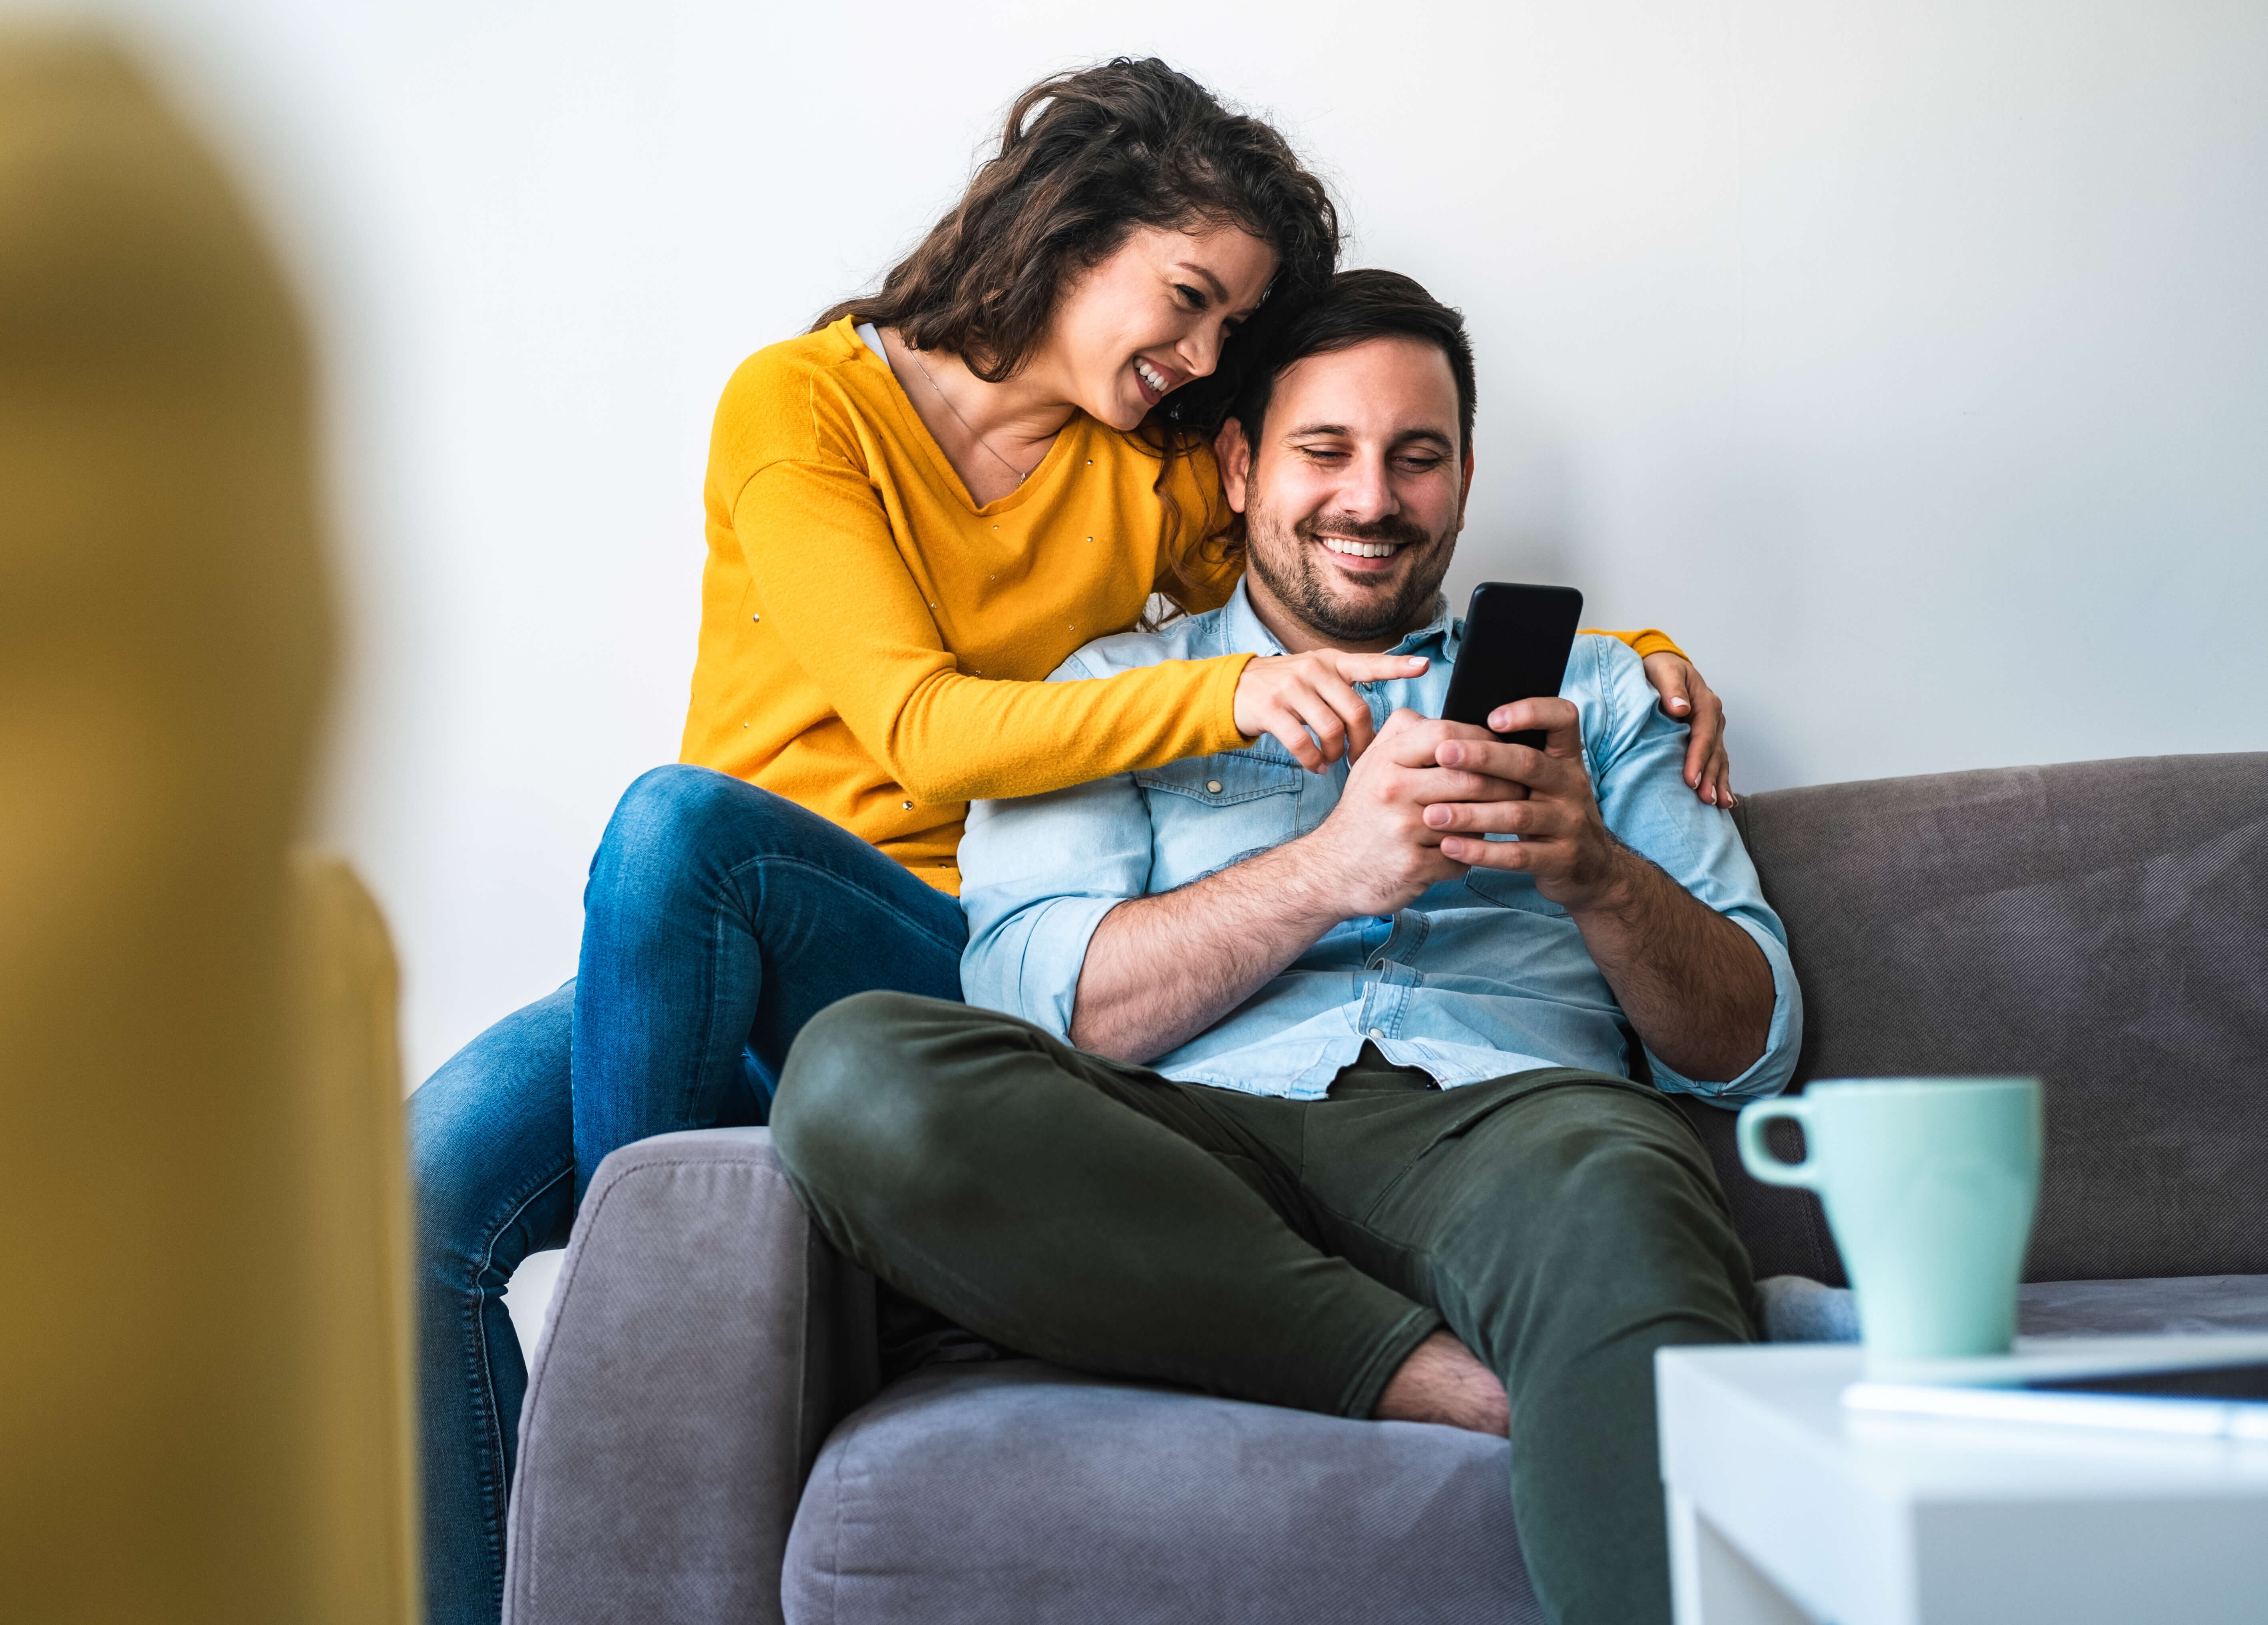 Couple hugging and sitting on the couch while looking at a phone